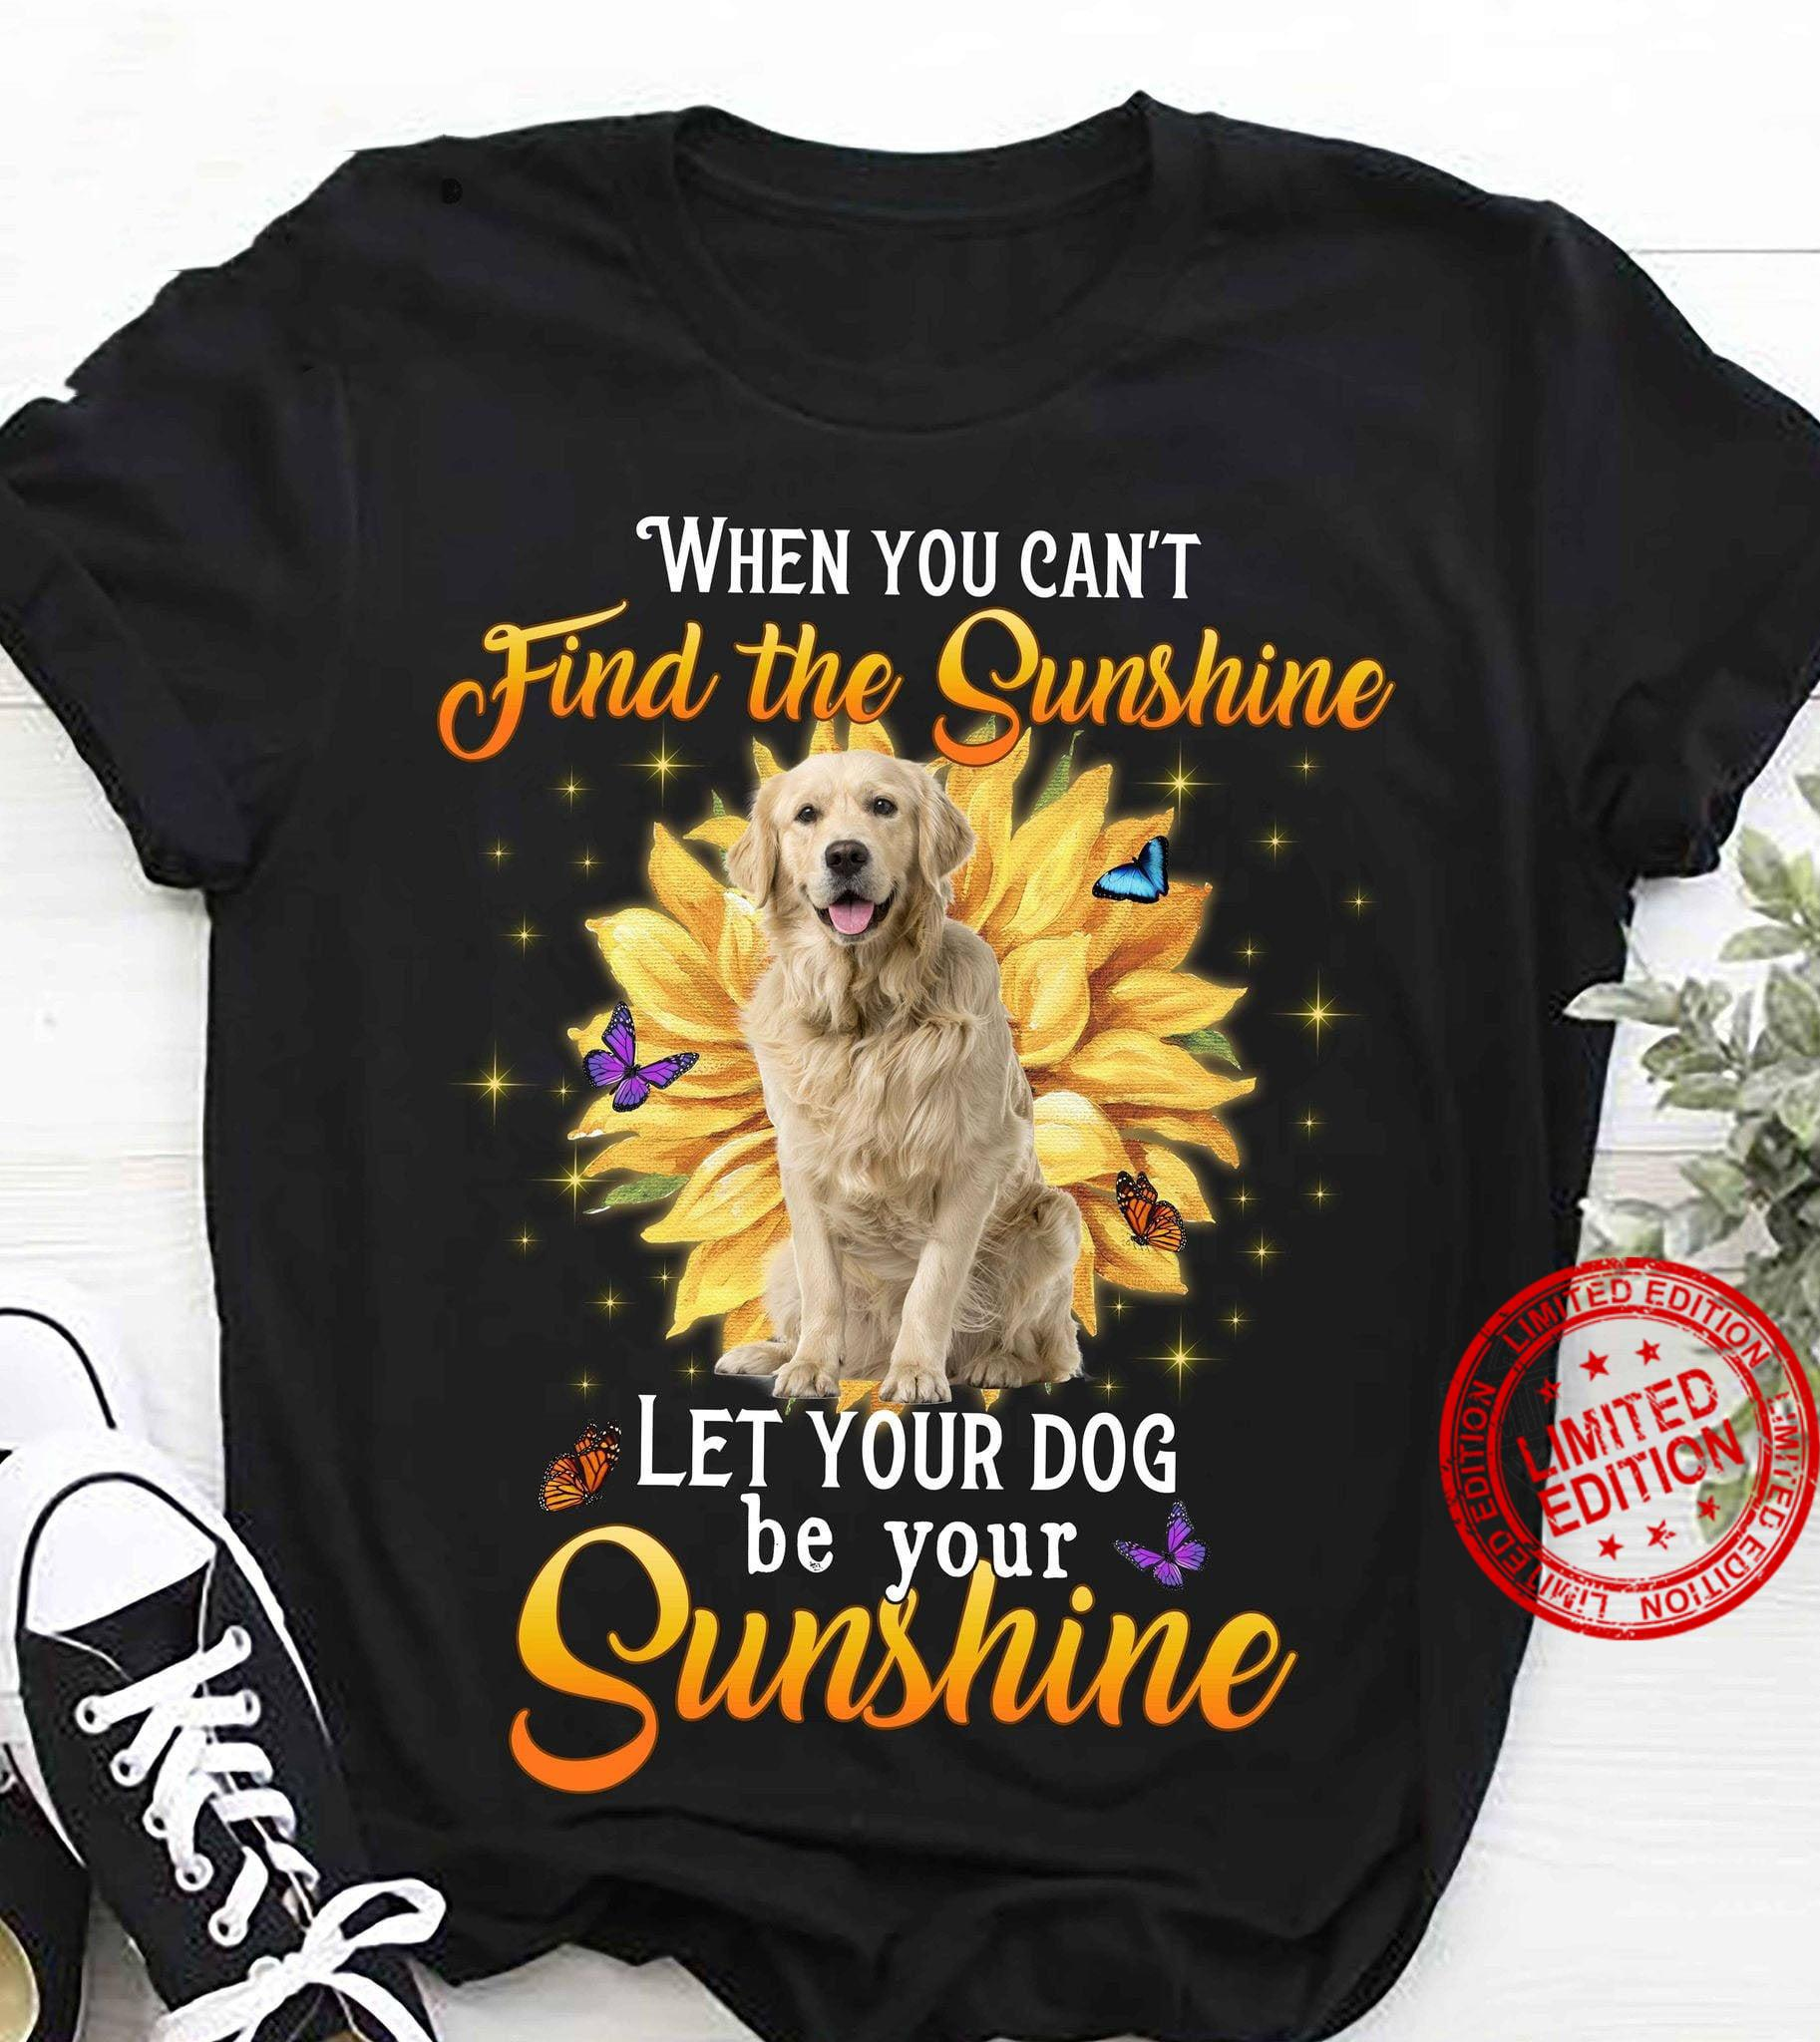 When You Can't Find The Sunshine Let Your Dog Be Your Sunshine Shirt